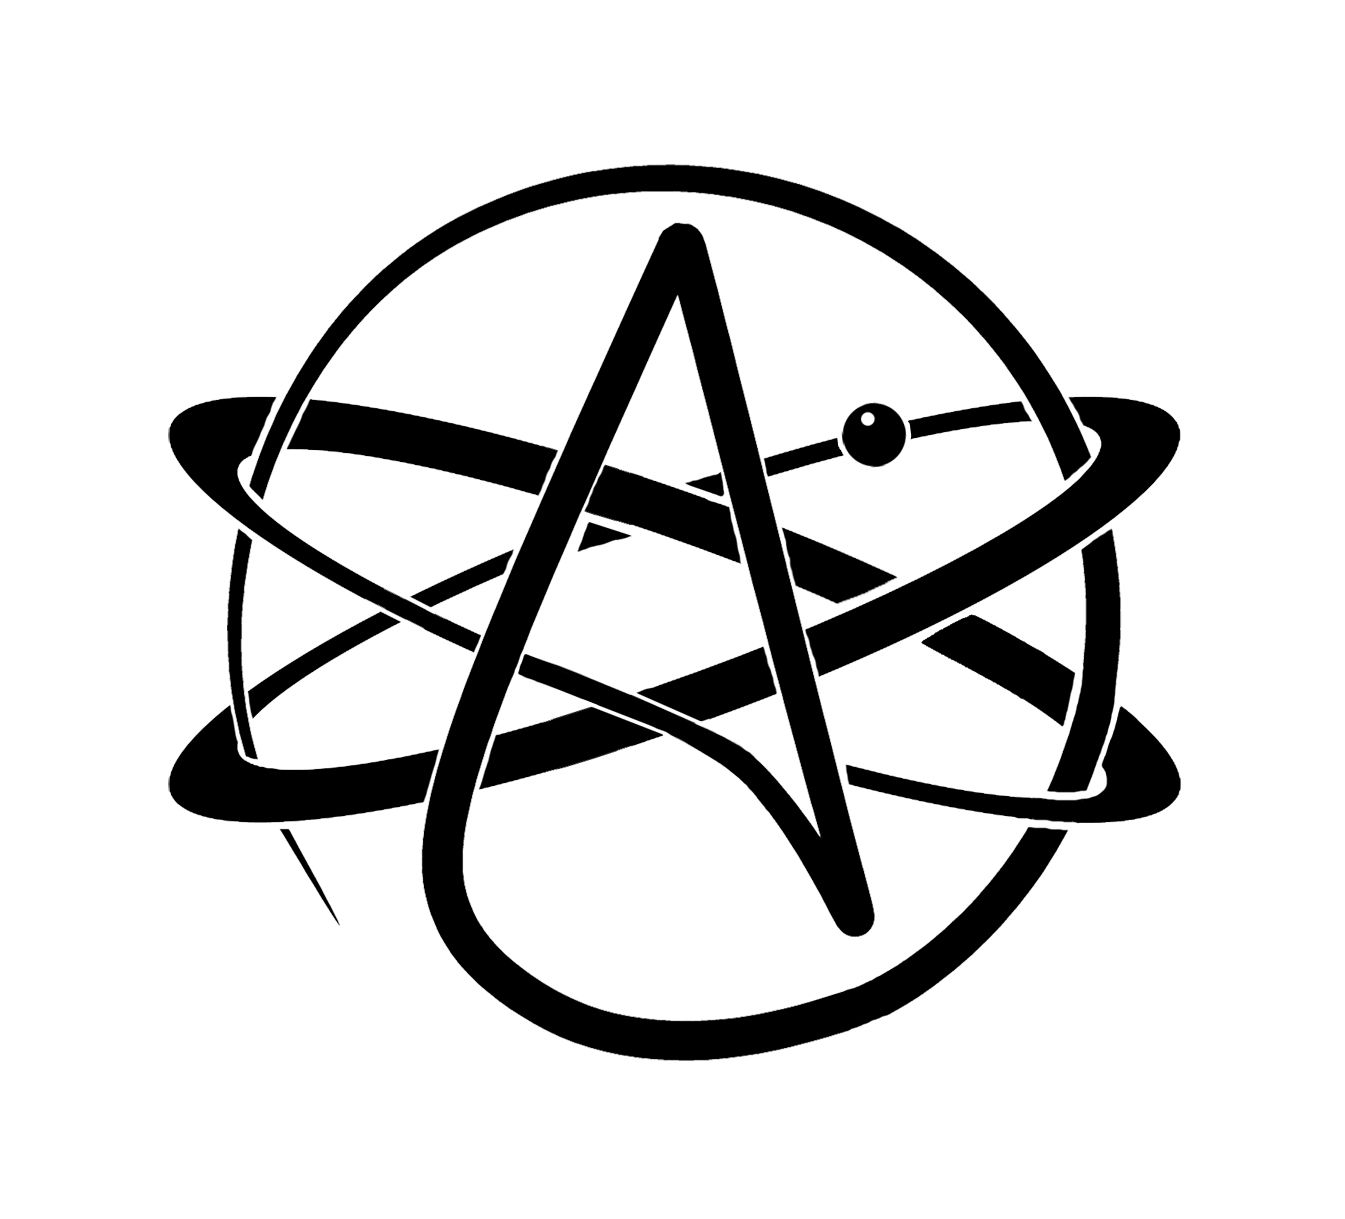 A global atheist symbol for international solidarity with atheist a global atheist symbol for international solidarity with atheist people under religious and political governments biocorpaavc Choice Image